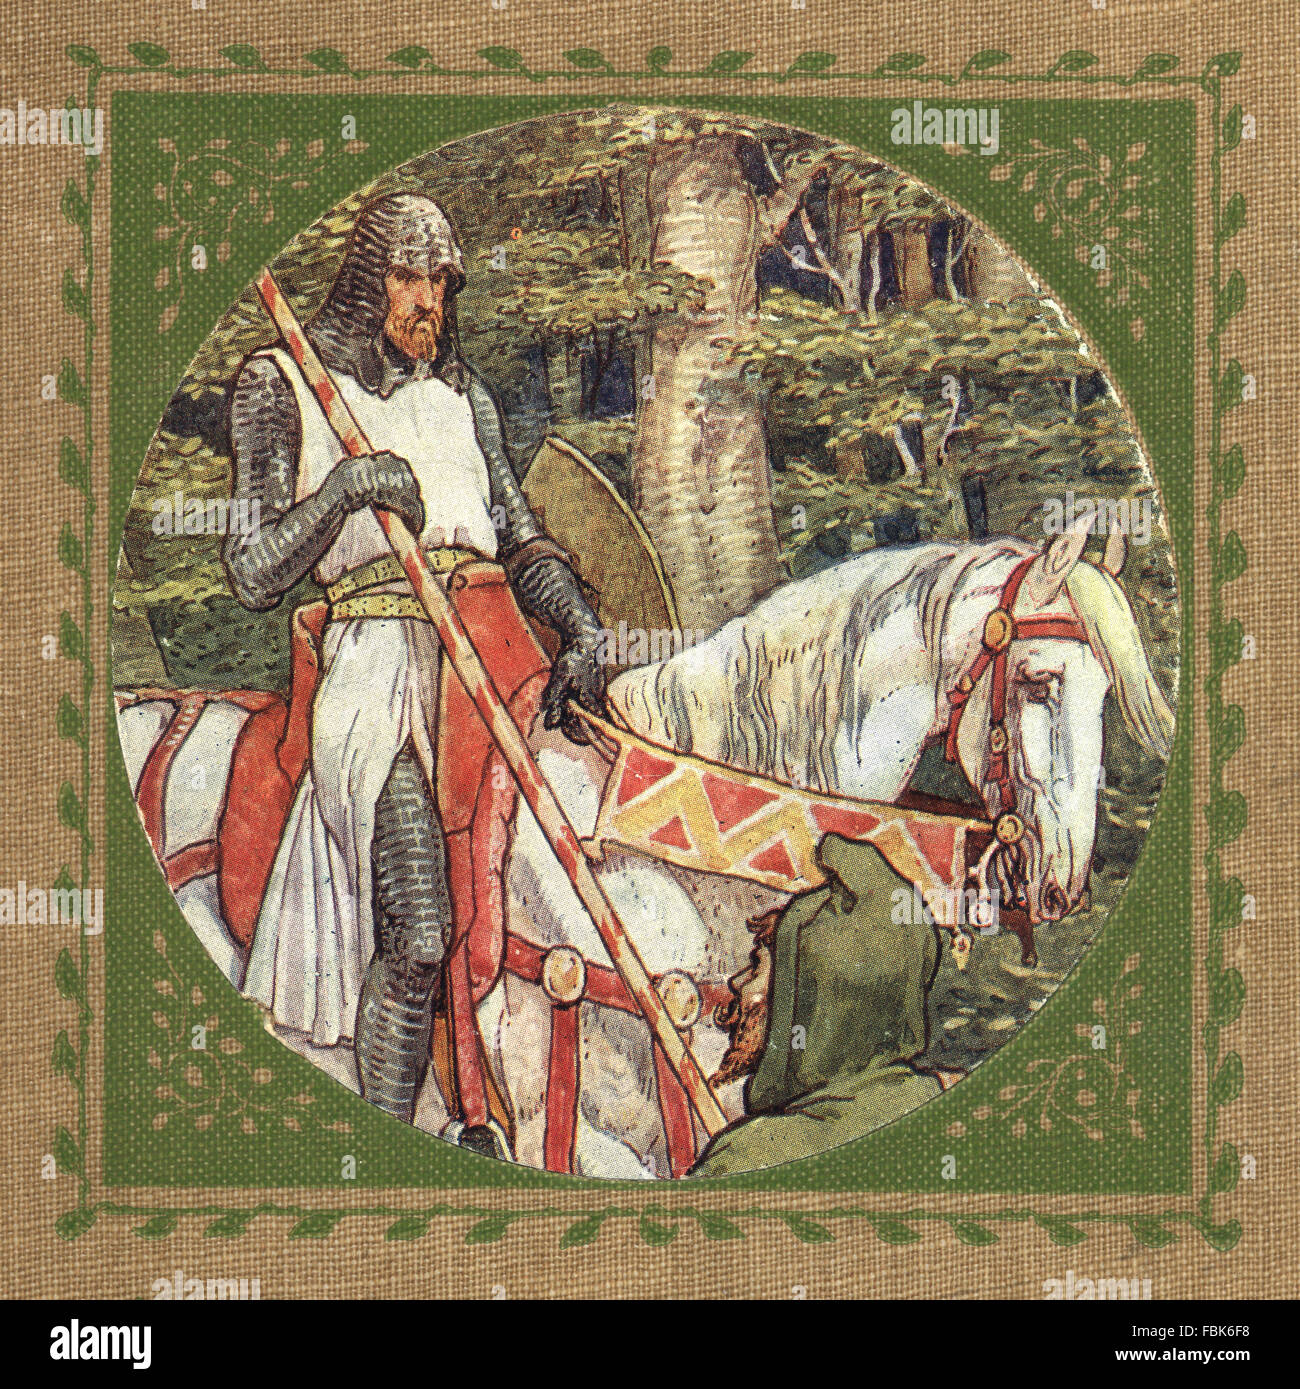 Illustration from the story of Robin Hood.  Little John and the Knight. By Walter Crane - Stock Image